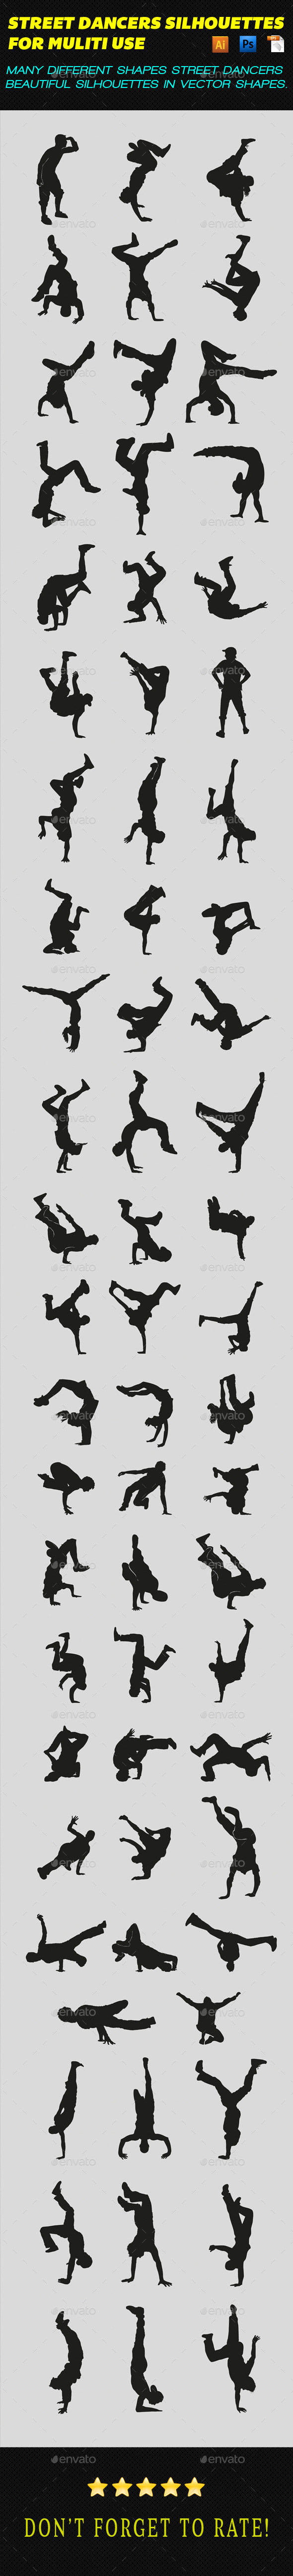 GraphicRiver Street Dancers Silhouettes 9830818